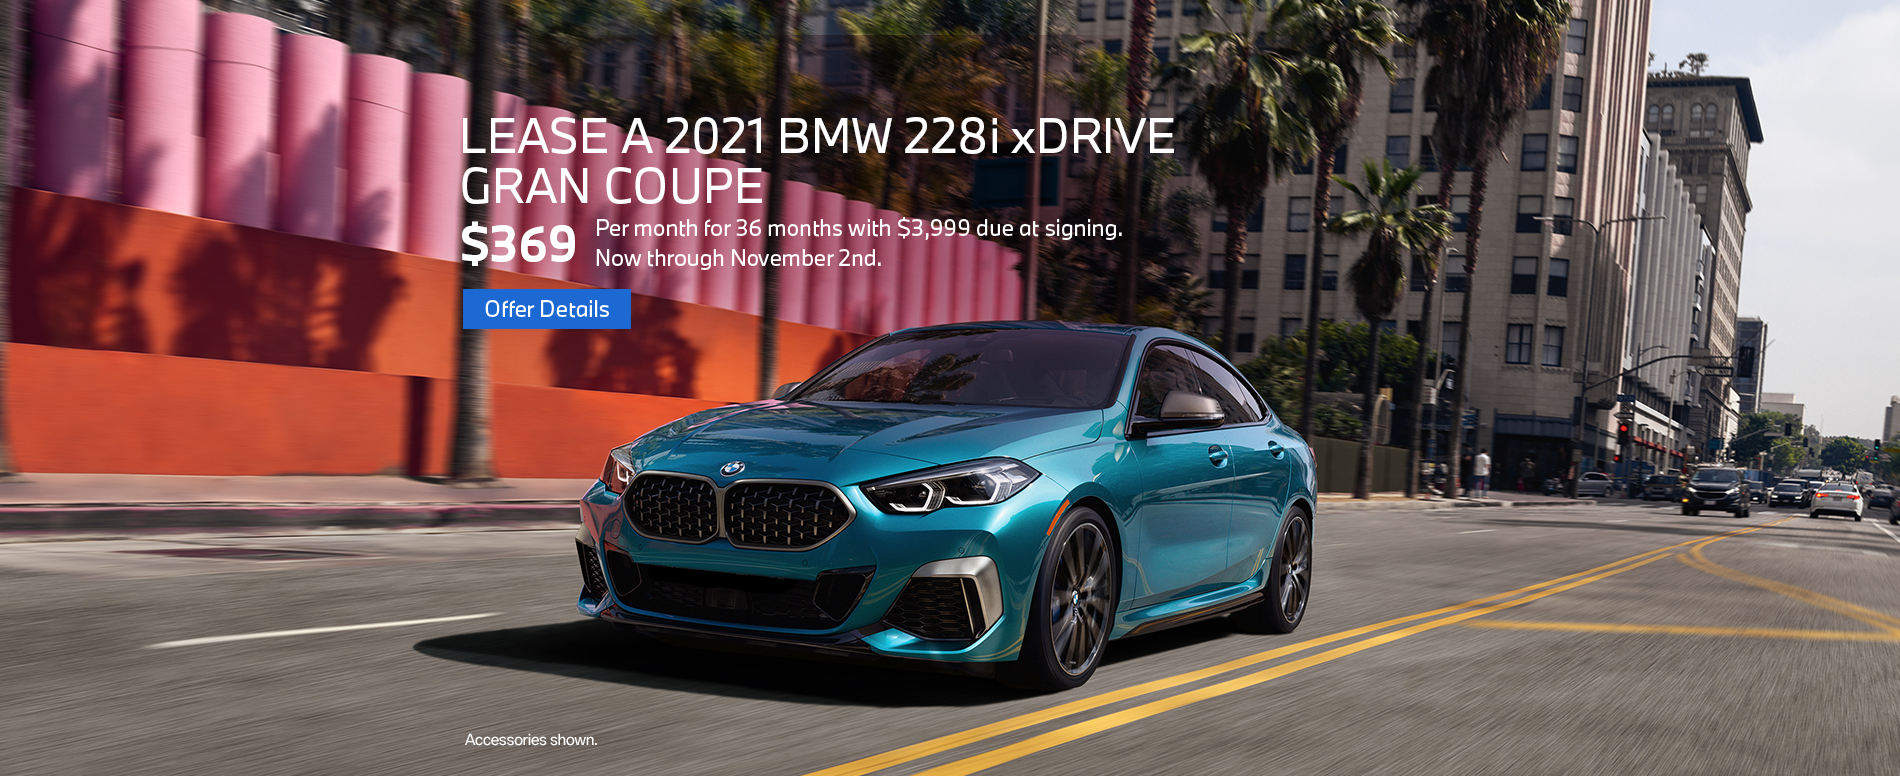 2021 BMW 228i Gran Coupe Lease